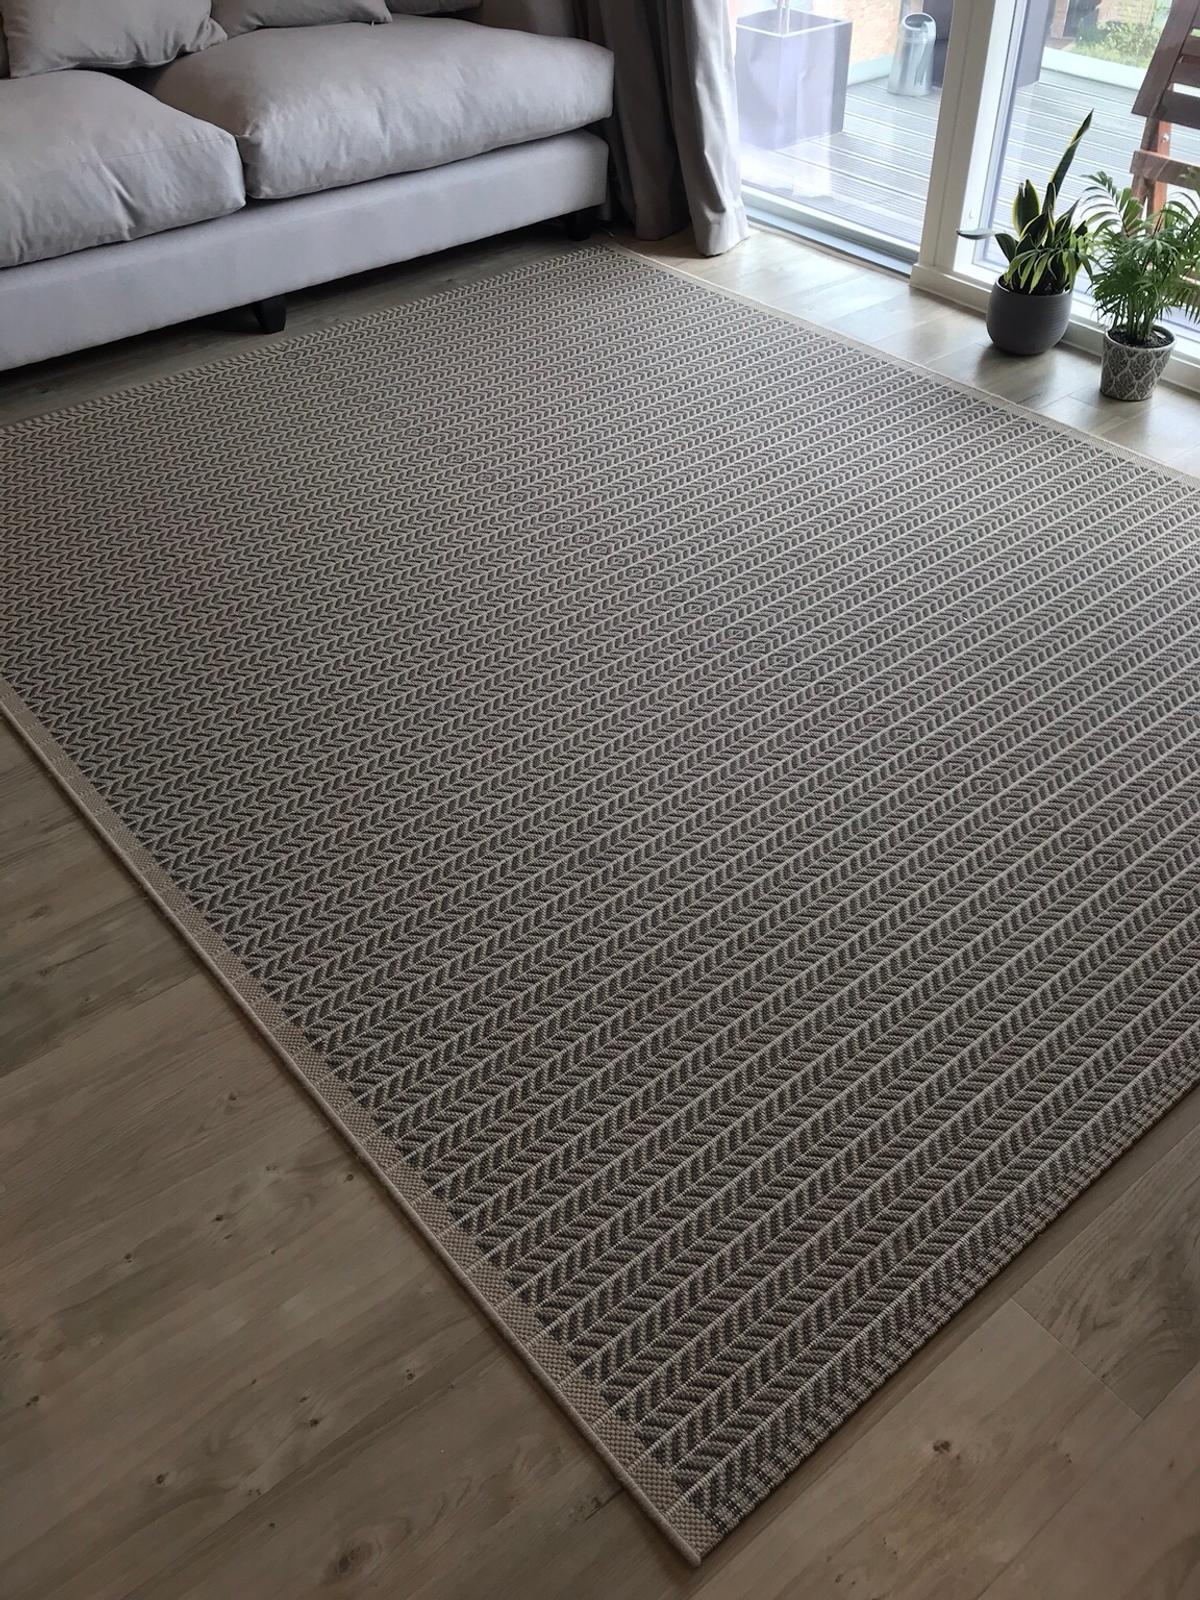 Ikea LobbÄk Rug Flatwoven In Outdoor